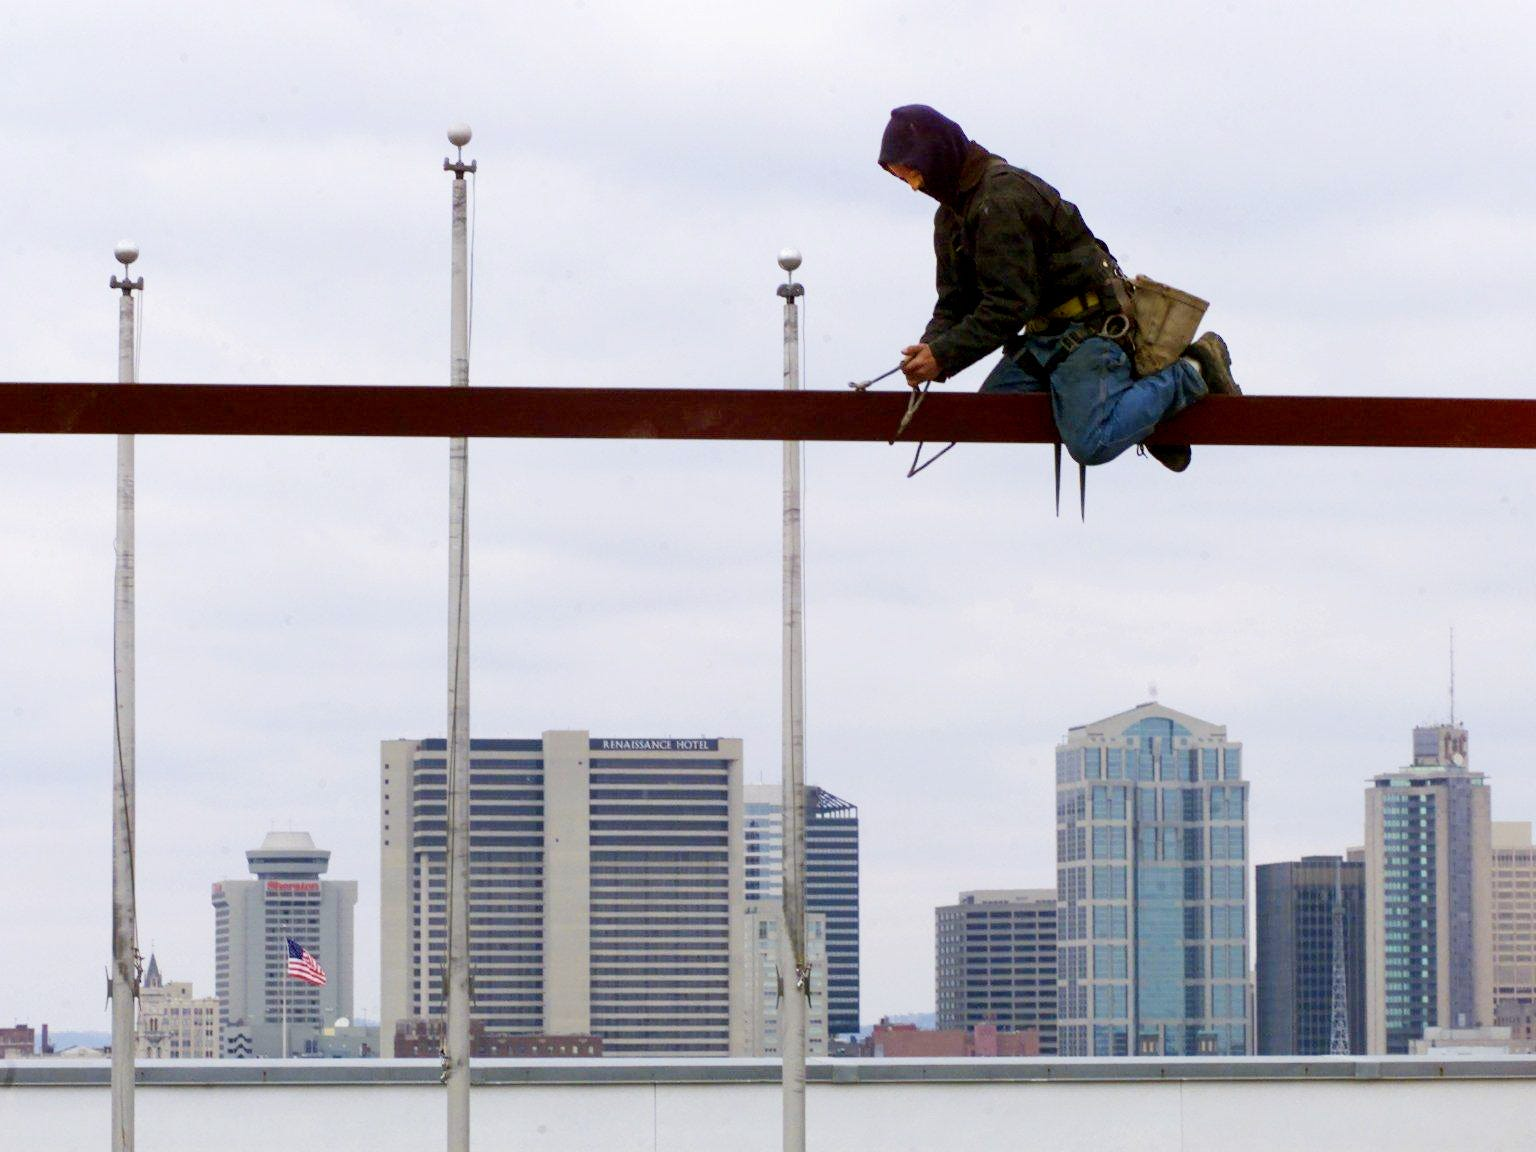 With Nashville's skyline behind him, Derick Dodson straddles a beam as the frame of a 36' glass pyramid rises above the Cumberland Science Museum Feb. 22, 2002.